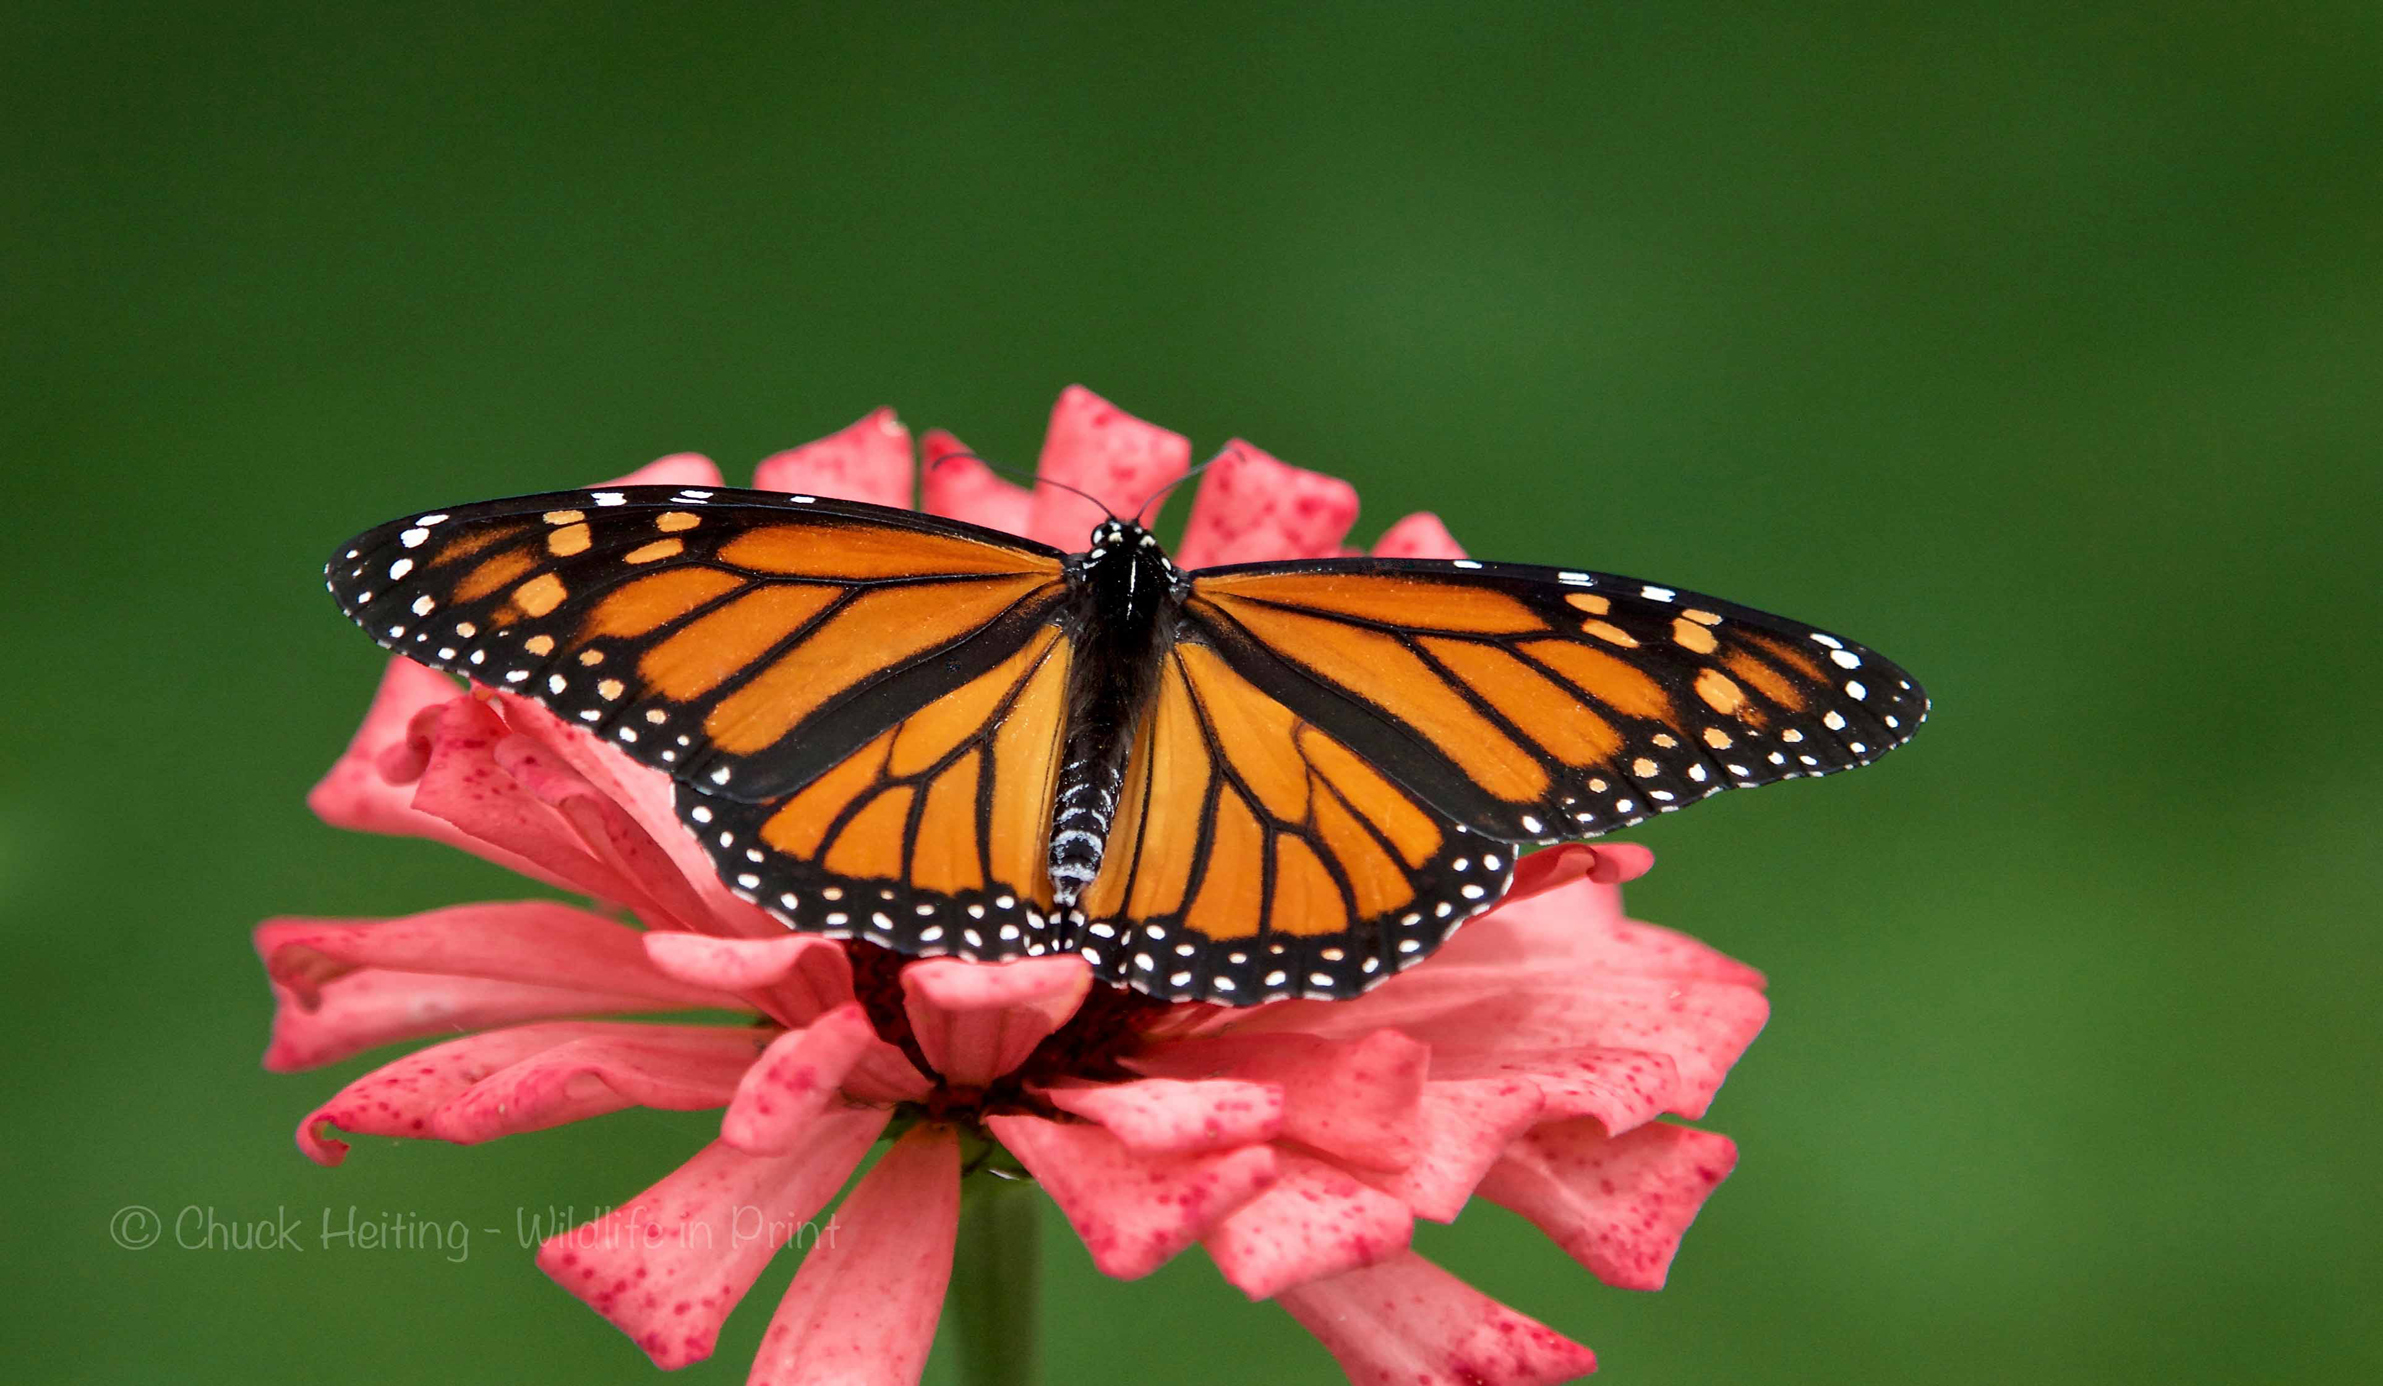 A picture of a monarch butterfly on a pick flower.